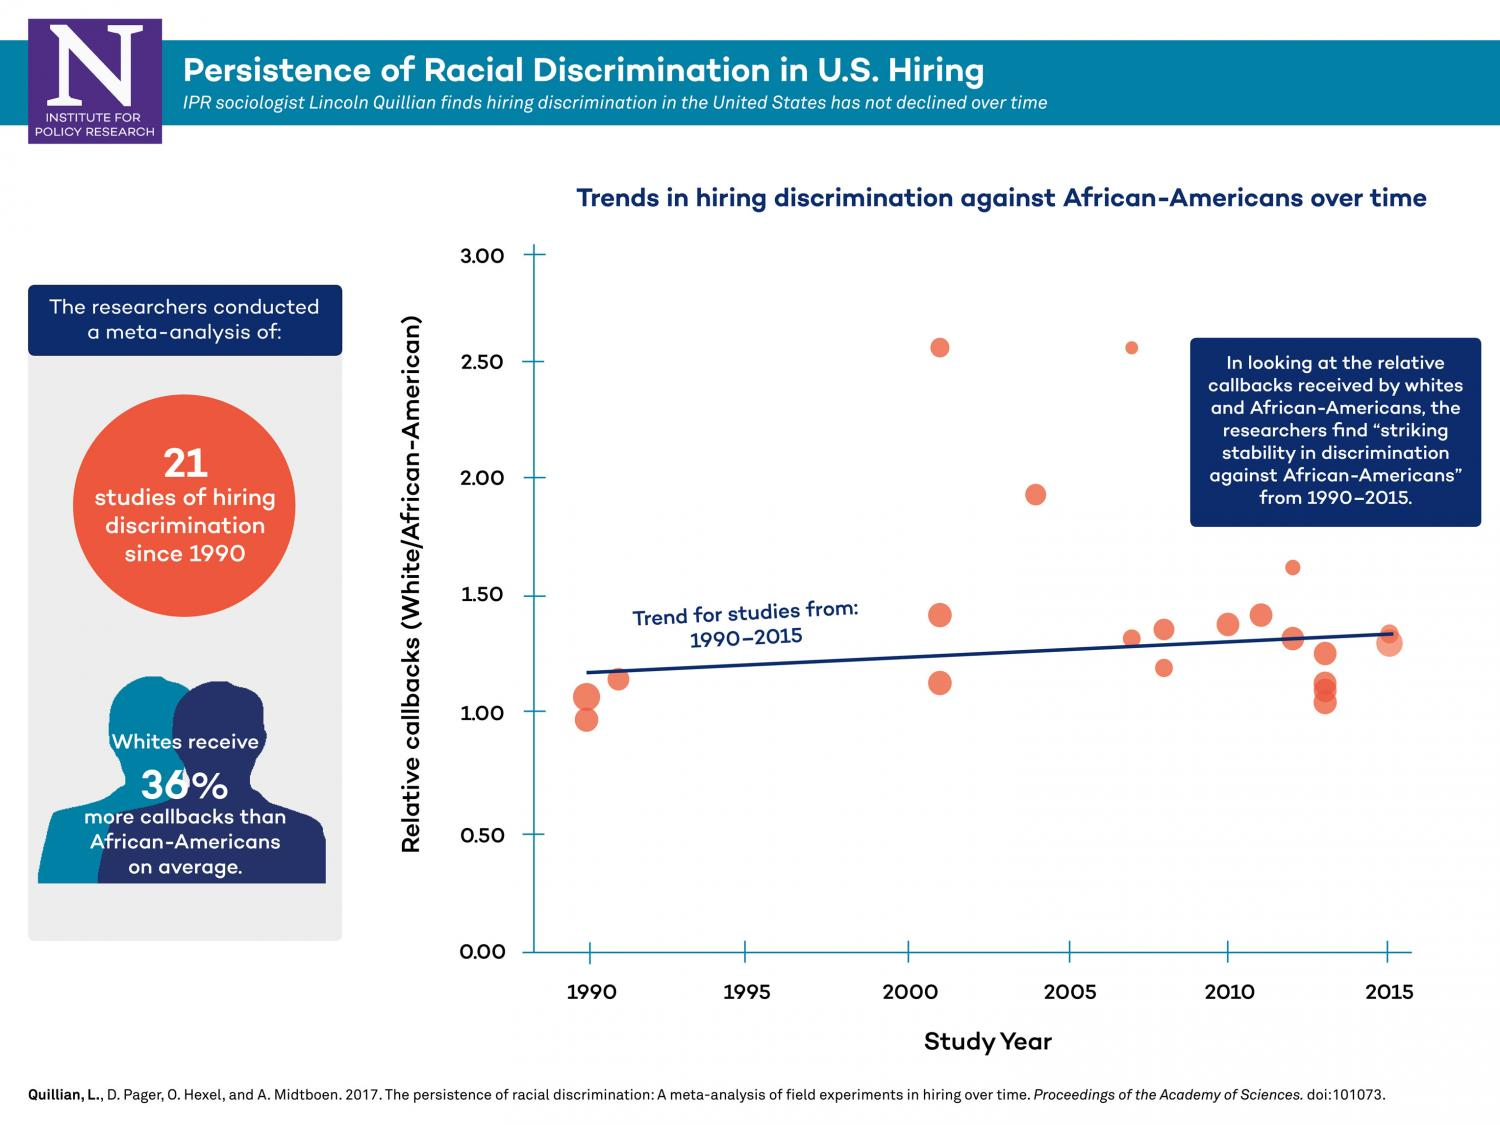 racial discrimination hispanics in america The 20th century saw discrimination against immigrants from southern and eastern europe (notably italian americans and polish americans), partly from anti-catholic sentiment (as well as discrimination against irish americans), and partly from nordicism, which considered all non-germanic immigrants as racially inferior.